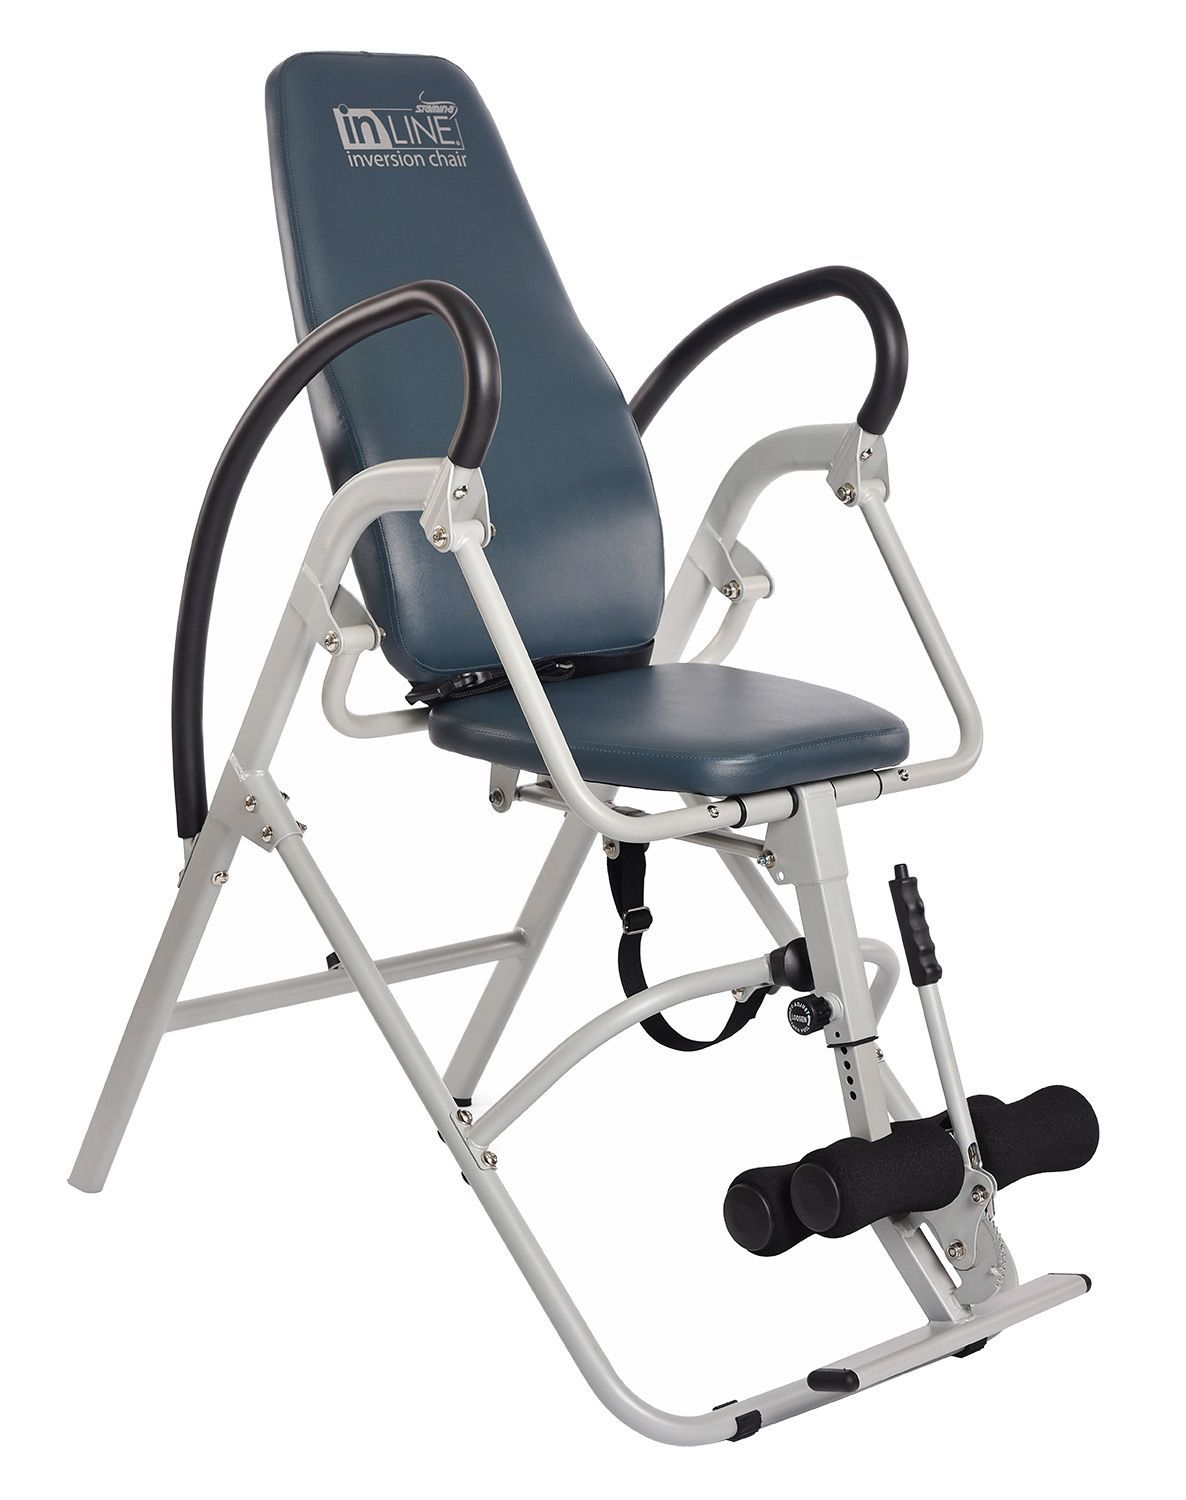 Stamina Products InLine Inversion Chair Inversion